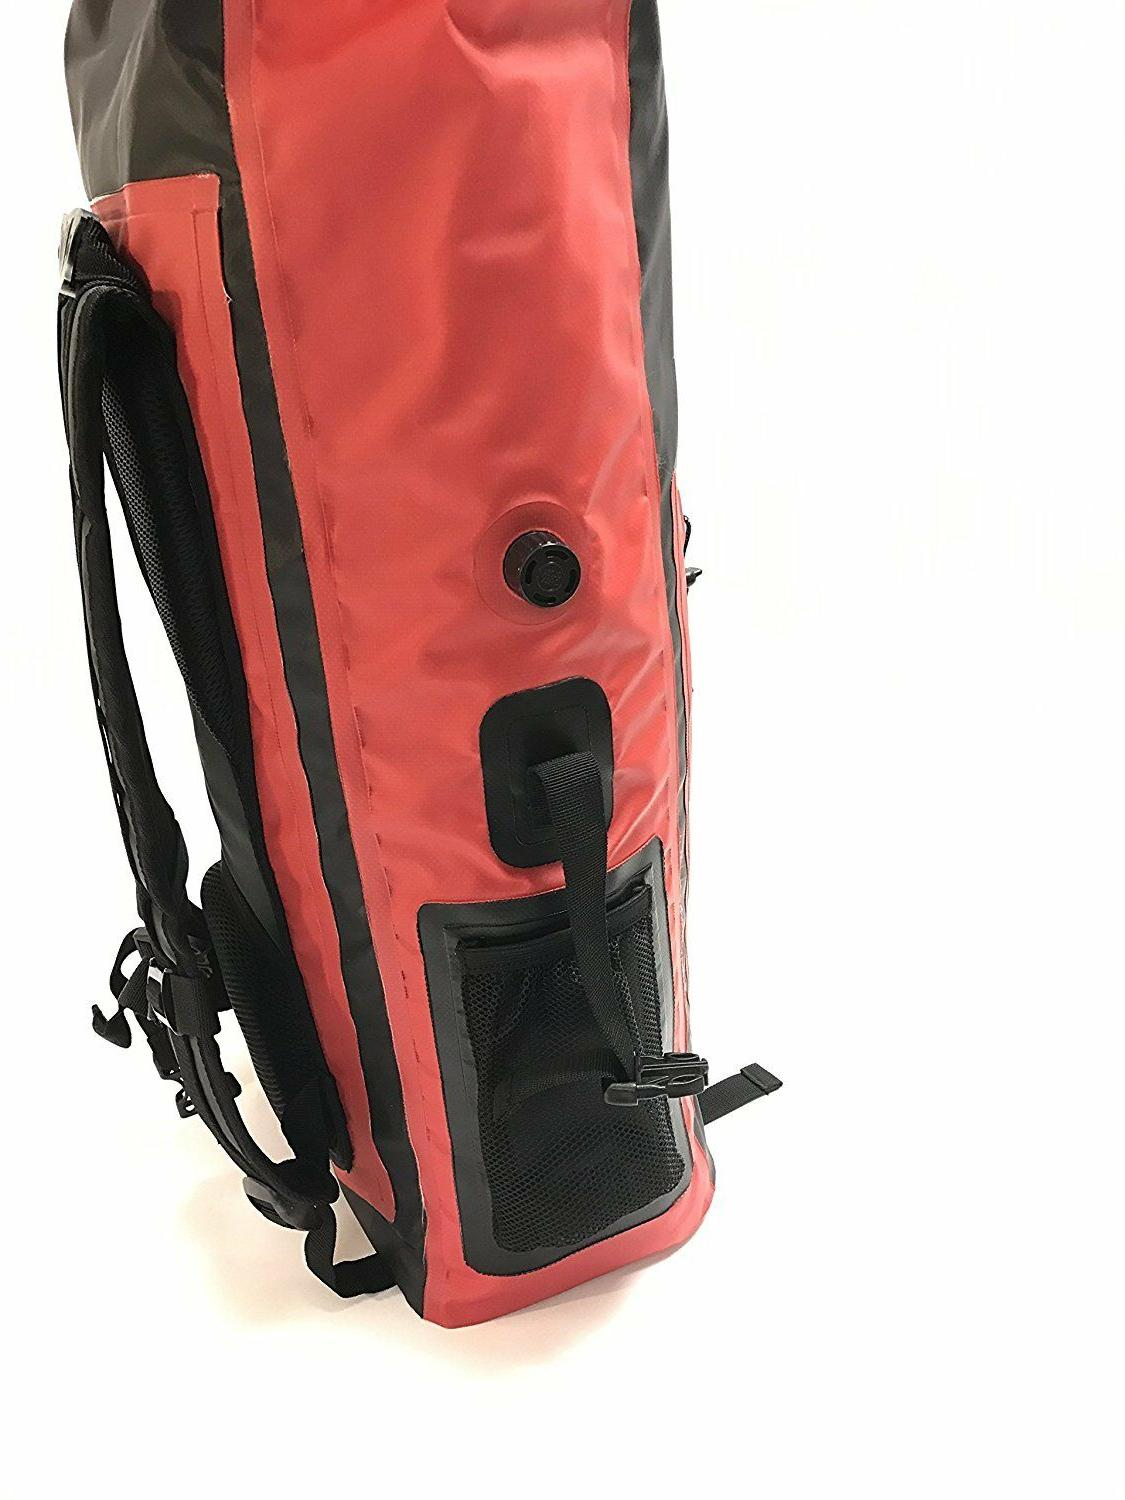 Fatboy Backpack Bag Kayaking, Canoeing